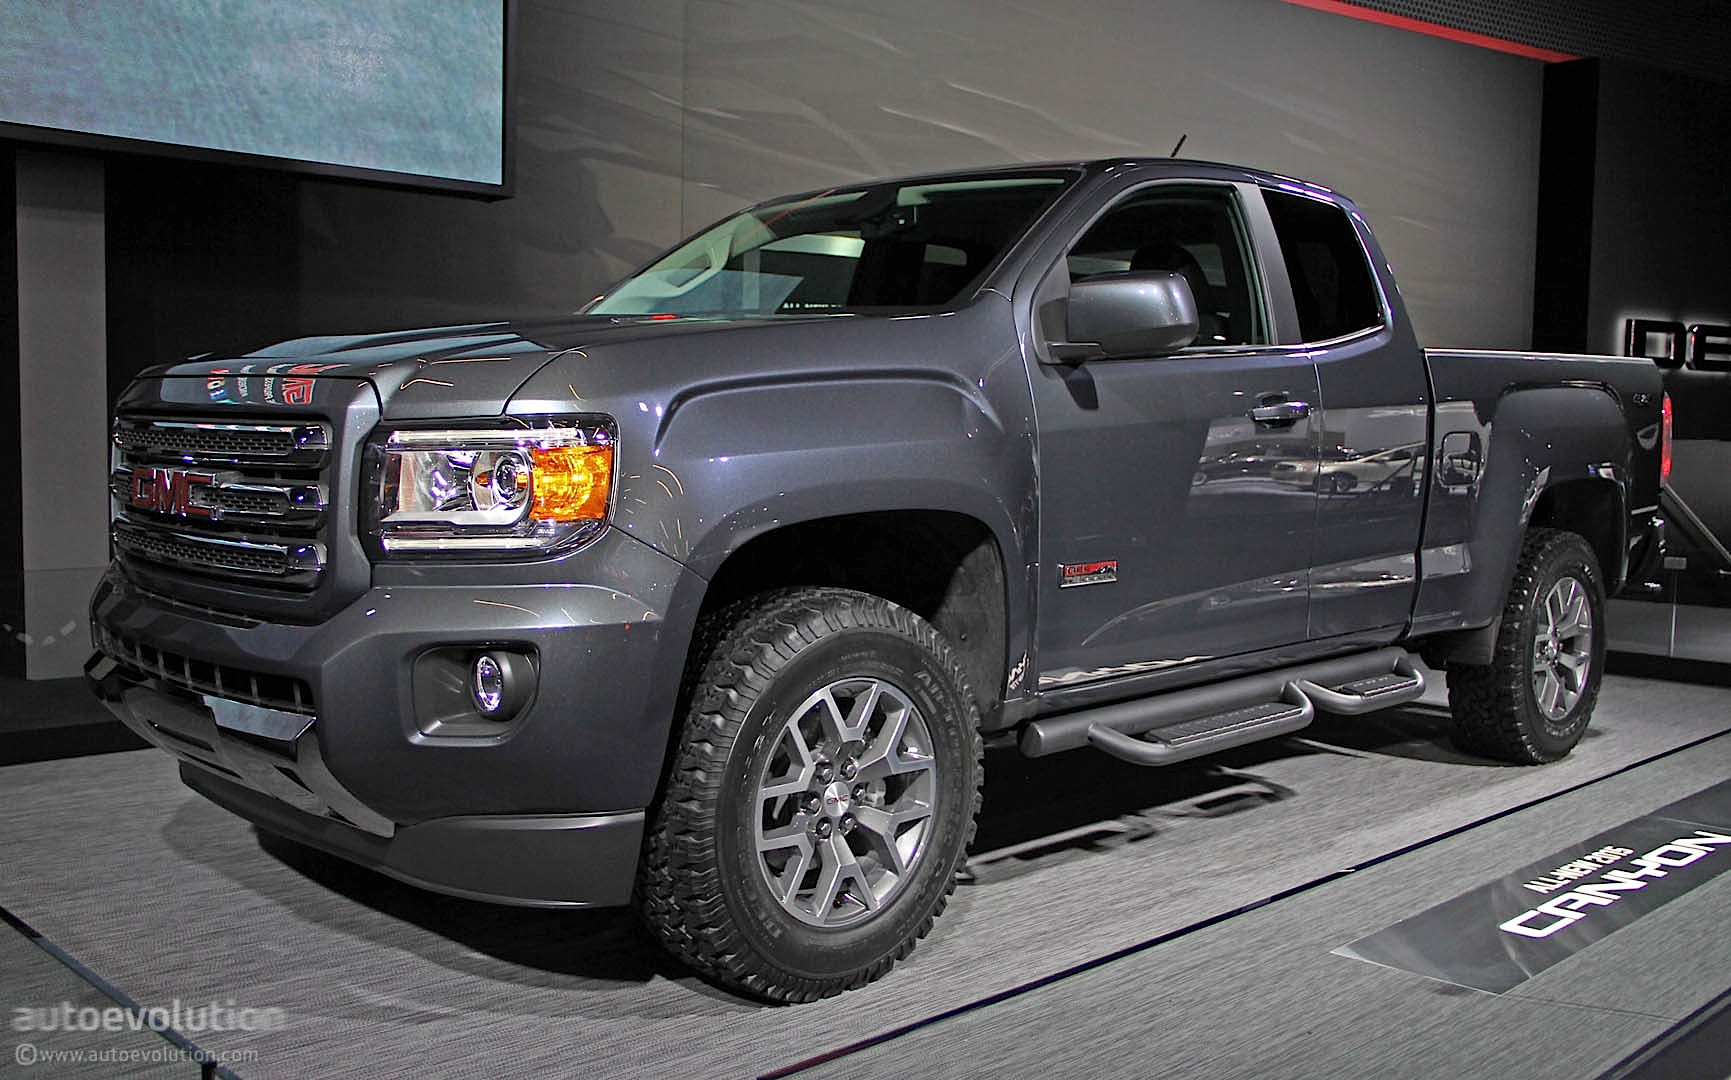 2015 GMC Canyon Makes Public Debut in Detroit